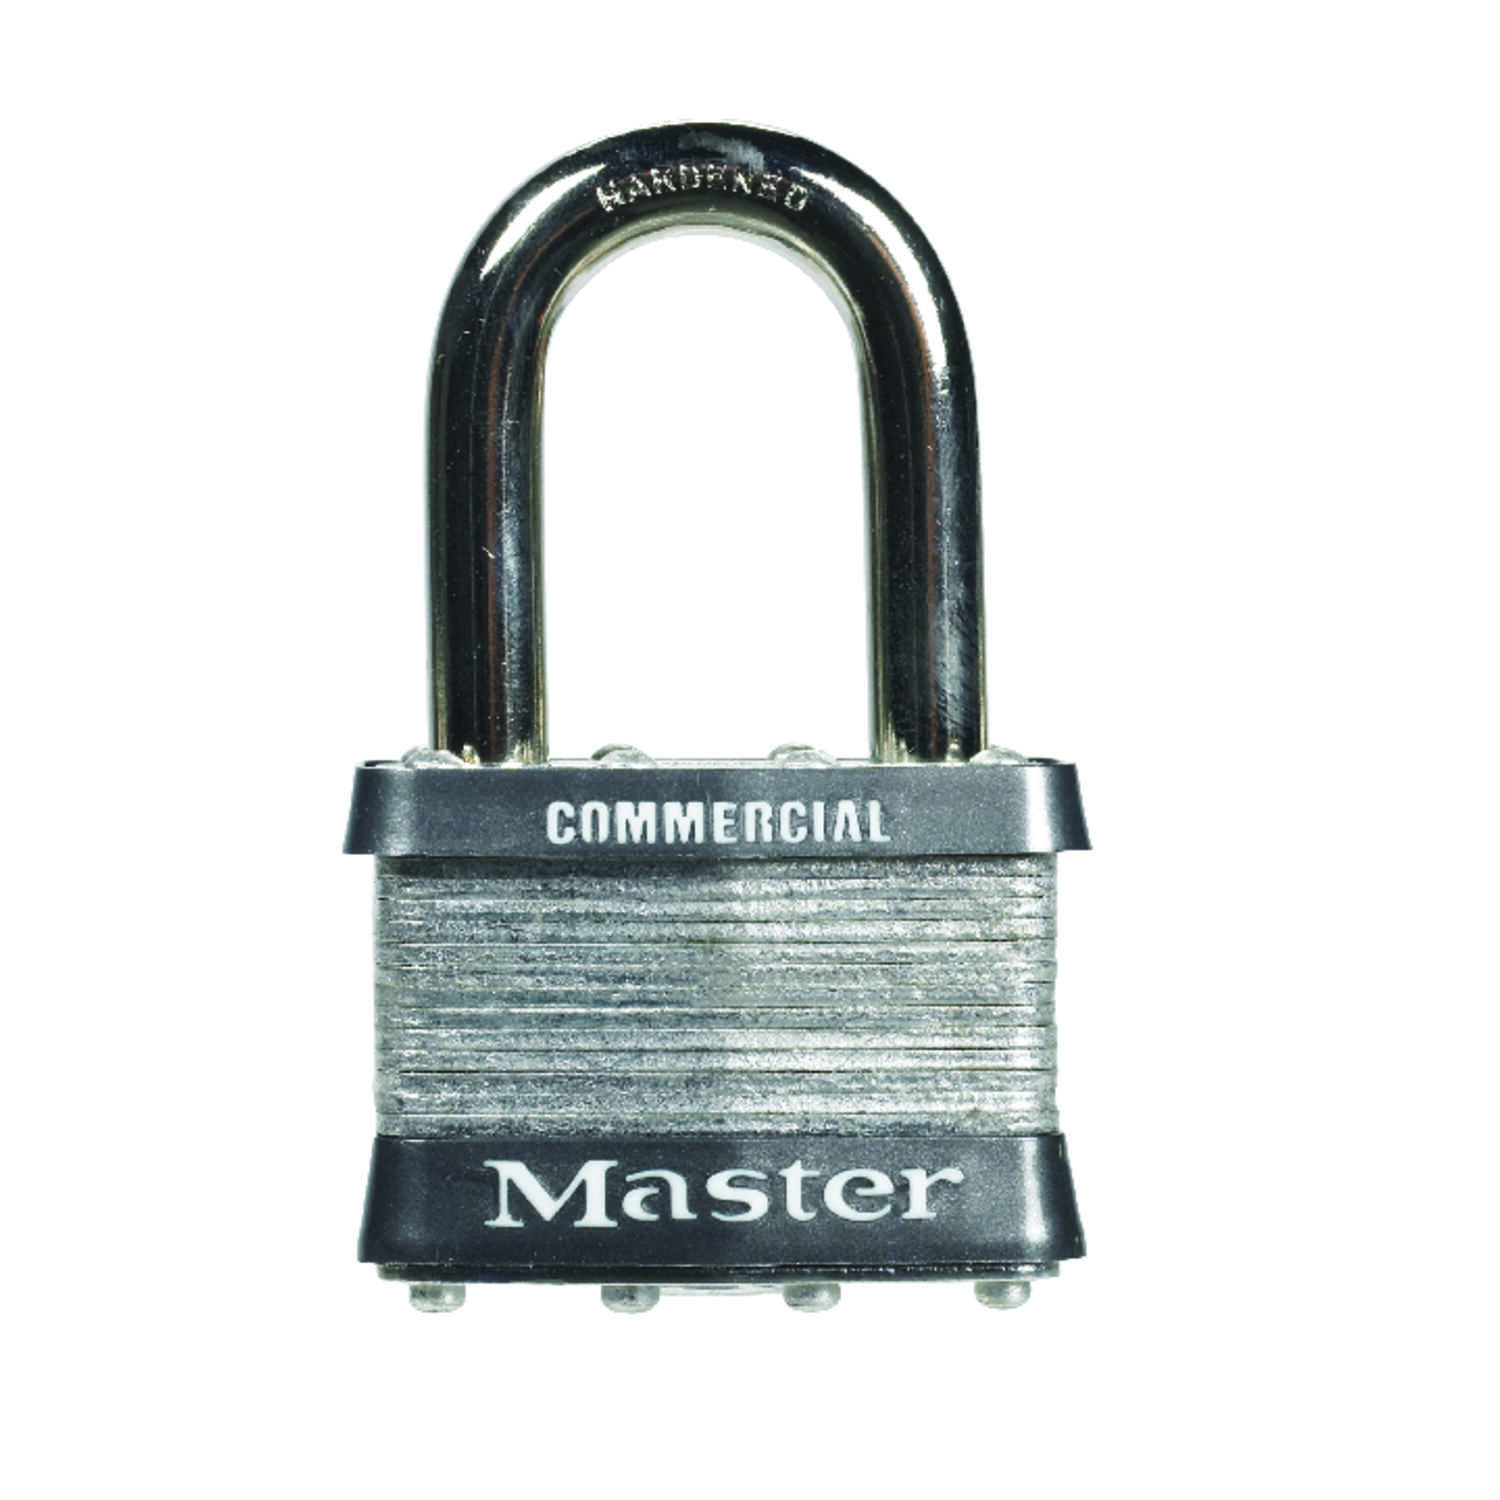 Master Lock  1-1/2 in. H x 7/8 in. W x 2 in. L Laminated Steel  4-Pin Cylinder  Padlock  1 pk Keyed